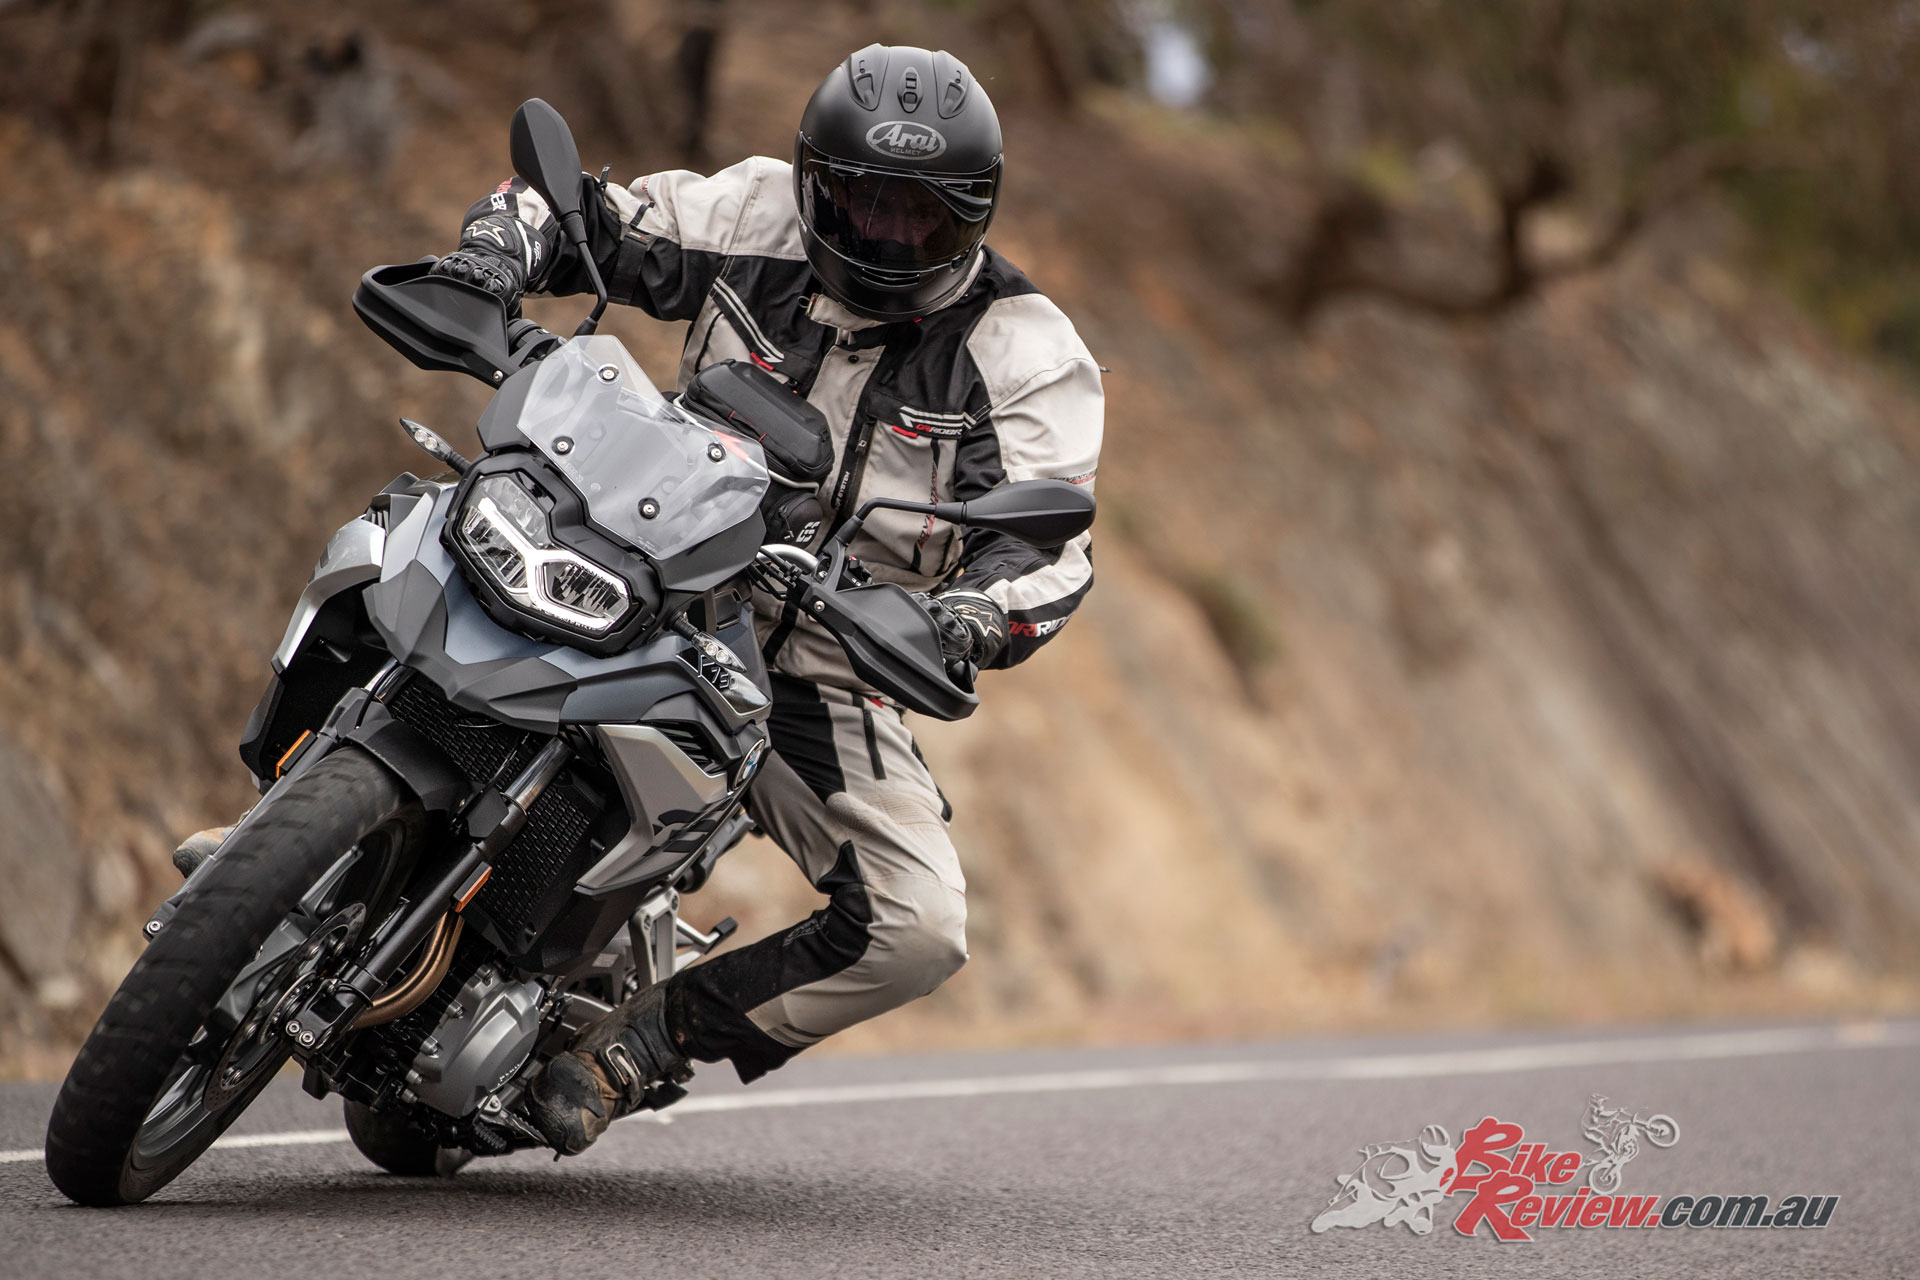 There's plenty of ability for local scratching with the F 750 GS only left behind on the open road by the more powerful 850 or larger capacity machines